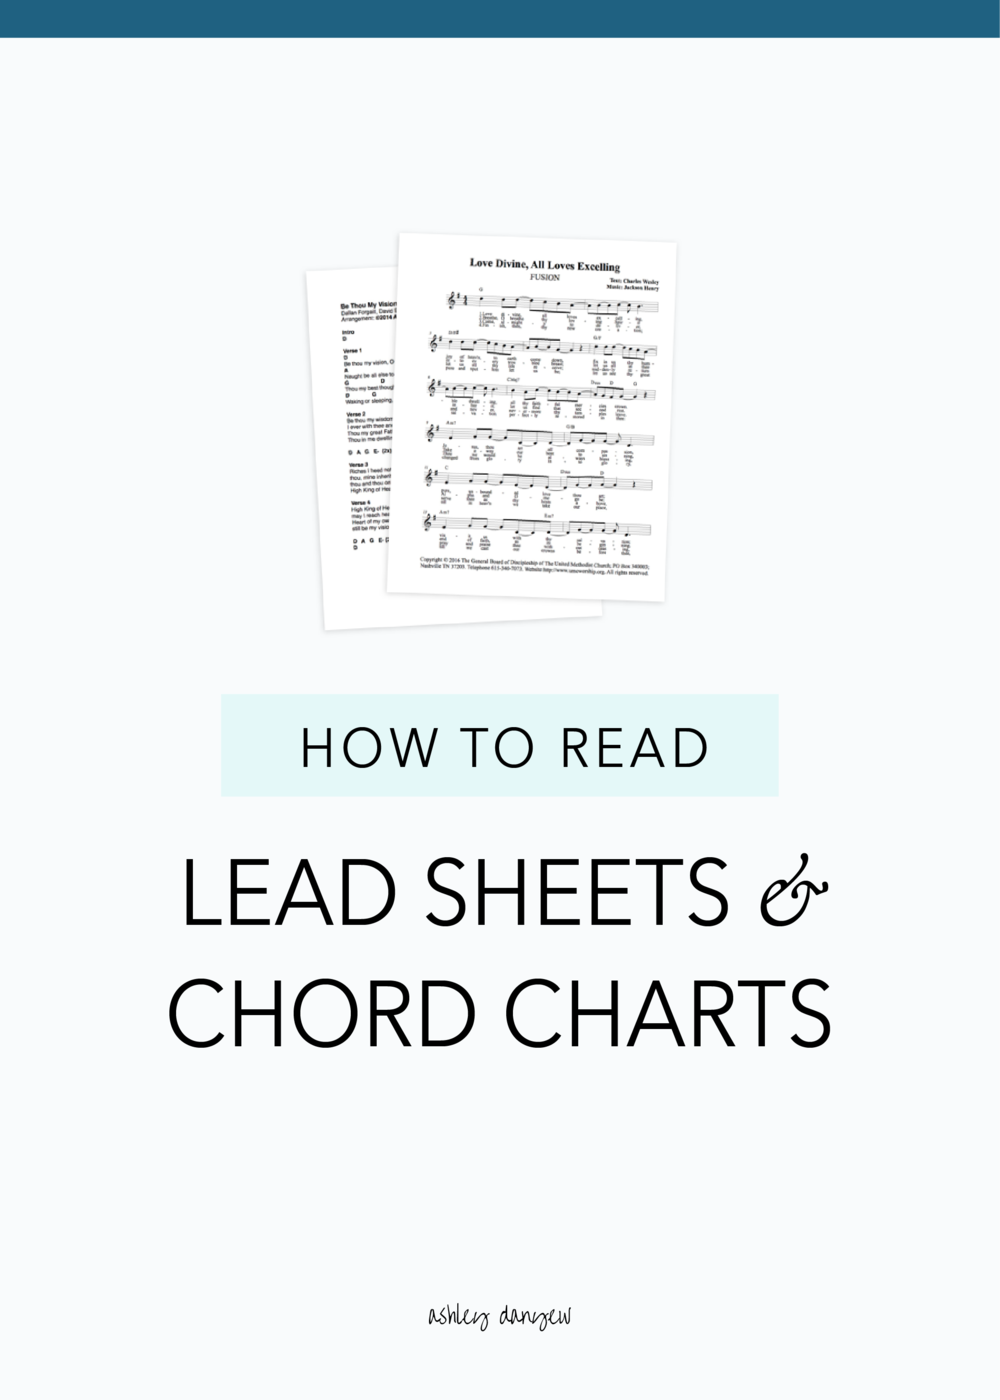 How to Read Lead Sheets and Chord Charts-05.png